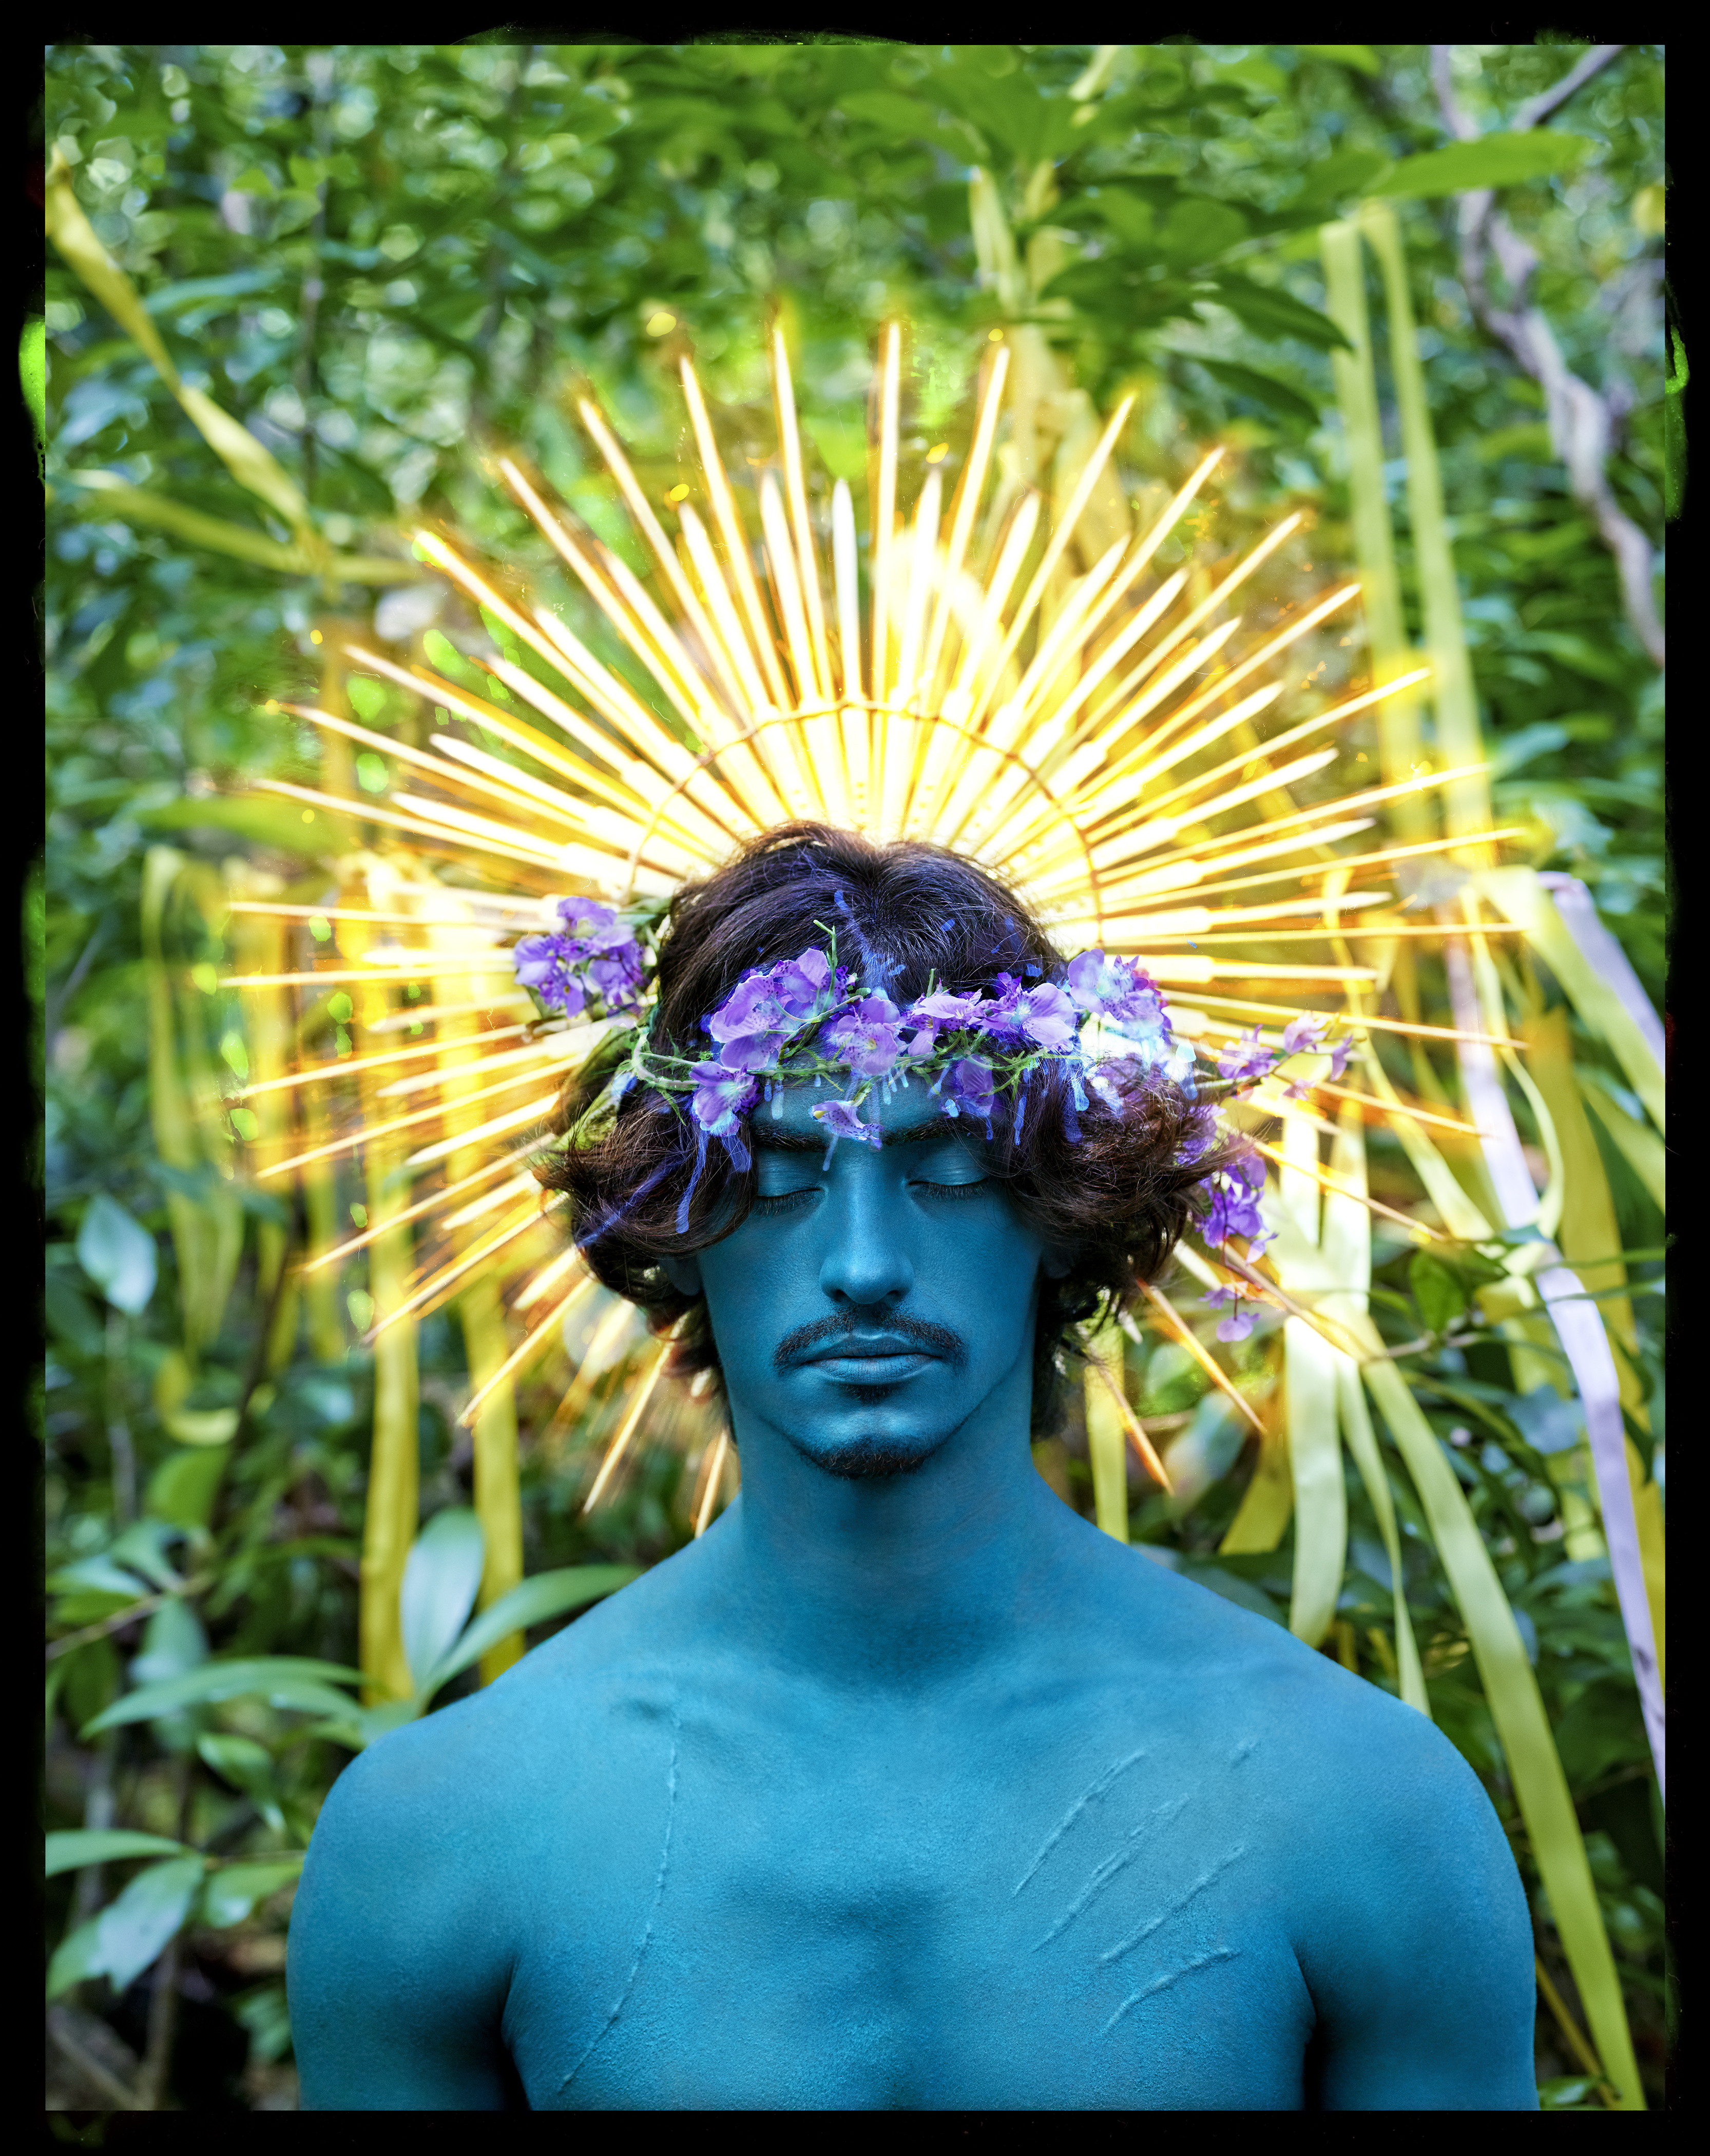 Behold by David LaChapelle from the New World Collection